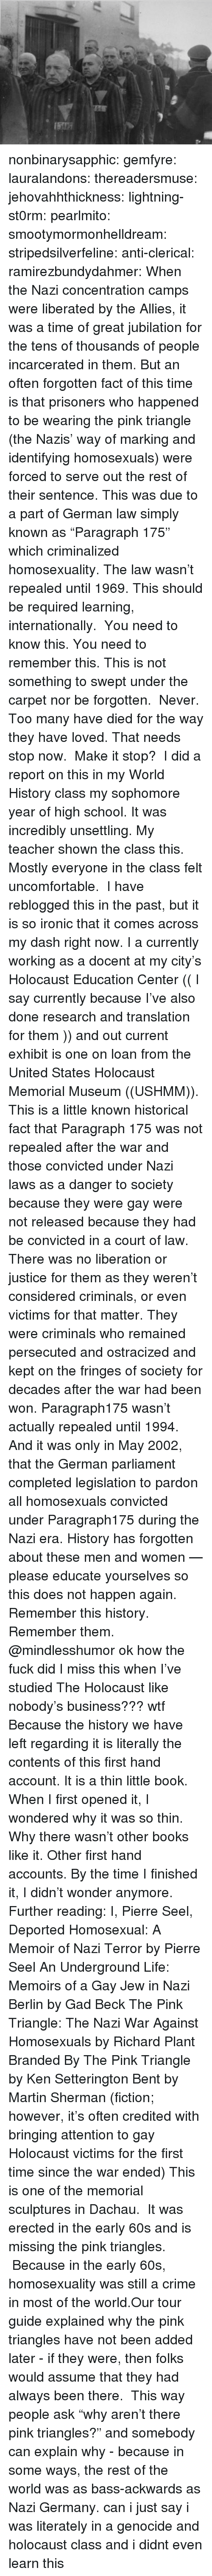 """Literately: nonbinarysapphic:  gemfyre:  lauralandons:  thereadersmuse:  jehovahhthickness:  lightning-st0rm:  pearlmito:  smootymormonhelldream:  stripedsilverfeline:  anti-clerical:  ramirezbundydahmer:  When the Nazi concentration camps were liberated by the Allies, it was a time of great jubilation for the tens of thousands of people incarcerated in them. But an often forgotten fact of this time is that prisoners who happened to be wearing the pink triangle (the Nazis' way of marking and identifying homosexuals) were forced to serve out the rest of their sentence. This was due to a part of German law simply known as """"Paragraph 175"""" which criminalized homosexuality. The law wasn't repealed until 1969.  This should be required learning, internationally.  You need to know this. You need to remember this. This is not something to swept under the carpet nor be forgotten. Never. Too many have died for the way they have loved. That needs stop now. Make it stop?  I did a report on this in my World History class my sophomore year of high school. It was incredibly unsettling.  My teacher shown the class this. Mostly everyone in the class felt uncomfortable.  I have reblogged this in the past, but it is so ironic that it comes across my dash right now. I a currently working as a docent at my city's Holocaust Education Center (( I say currently because I've also done research and translation for them )) and out current exhibit is one on loan from the United States Holocaust Memorial Museum ((USHMM)). This is a little known historical fact that Paragraph 175 was not repealed after the war and those convicted under Nazi laws as a danger to society because they were gay were not released because they had be convicted in a court of law. There was no liberation or justice for them as they weren't considered criminals, or even victims for that matter. They were criminals who remained persecuted and ostracized and kept on the fringes of society for decades after the war had been w"""